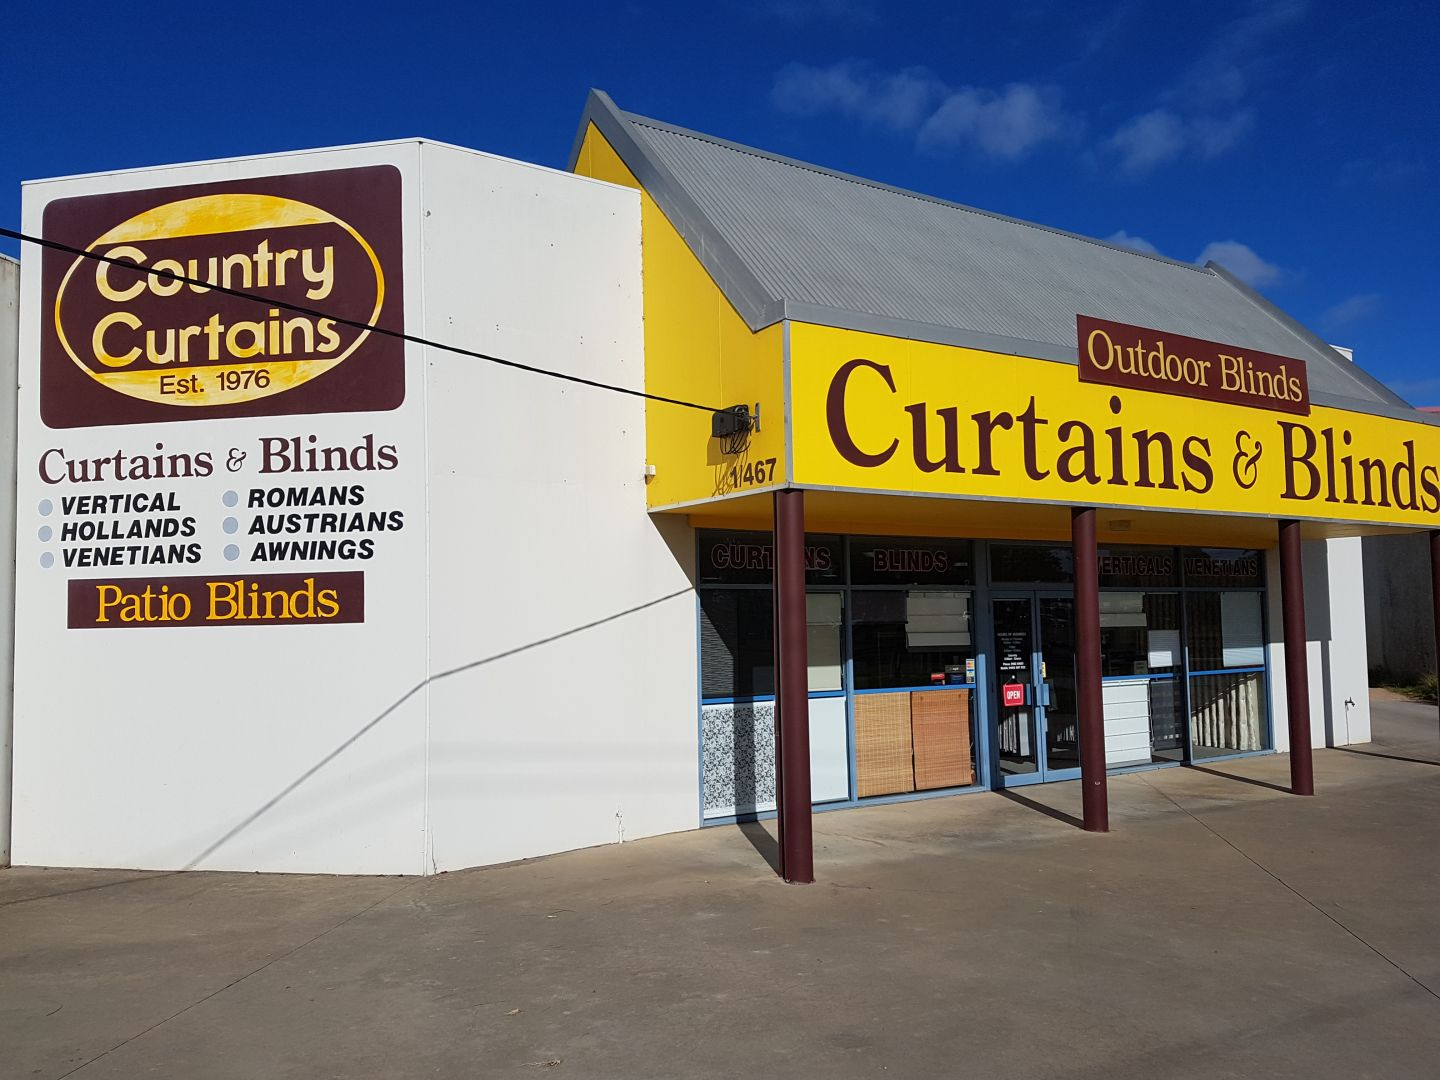 Country curtains logo - Country Curtains Bairnsdale Showroom